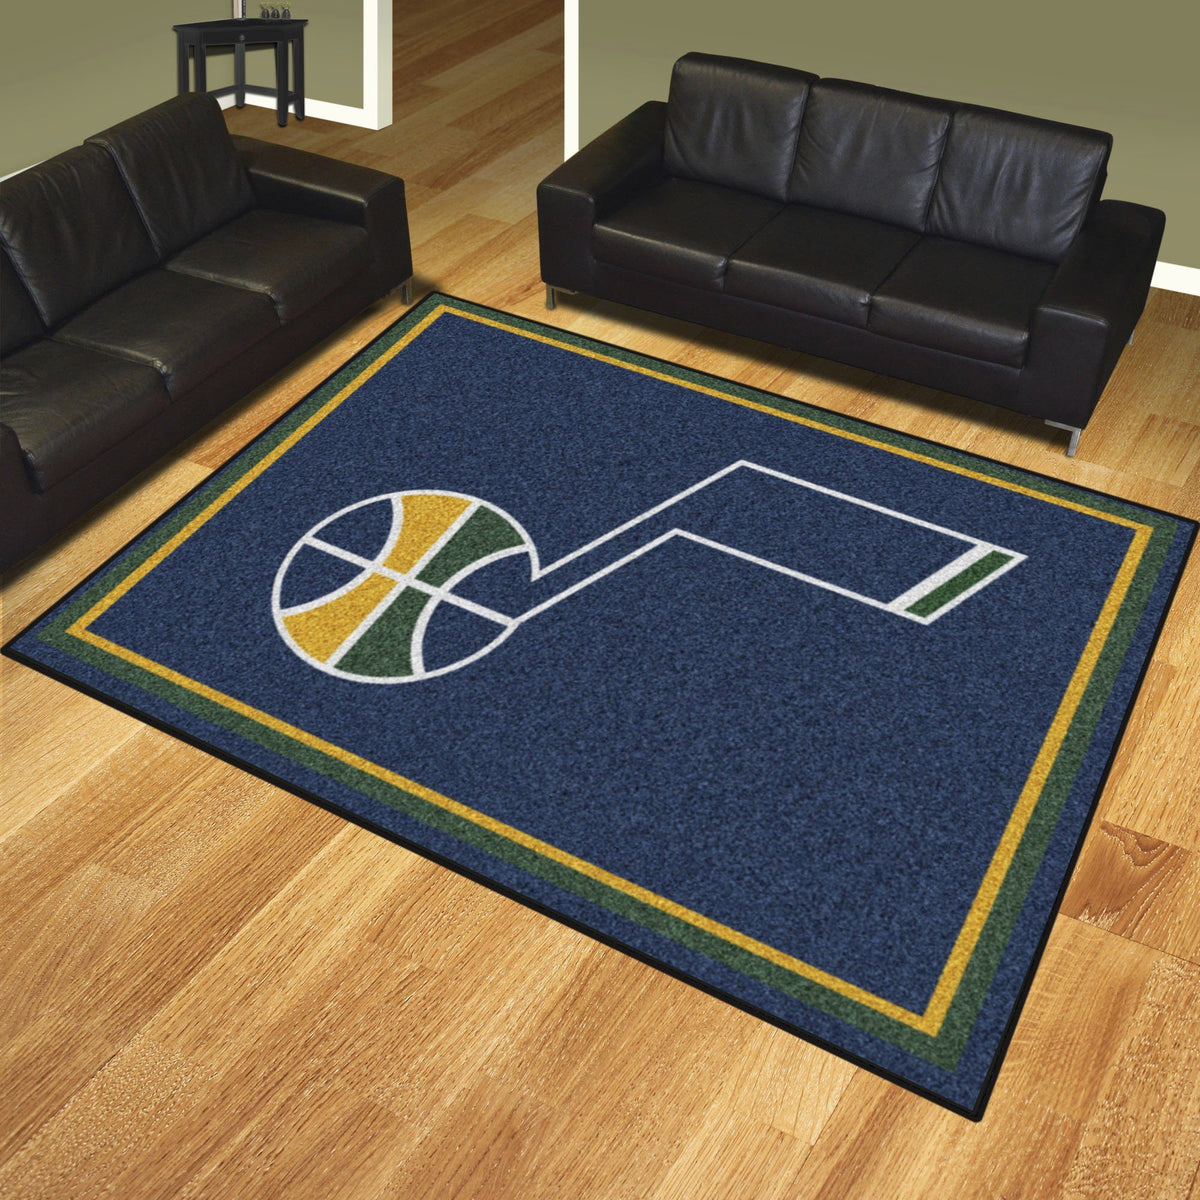 NBA - 8' x 10' Rug NBA Mats, Plush Rugs, 8x10 Rug, NBA, Home Fan Mats Utah Jazz